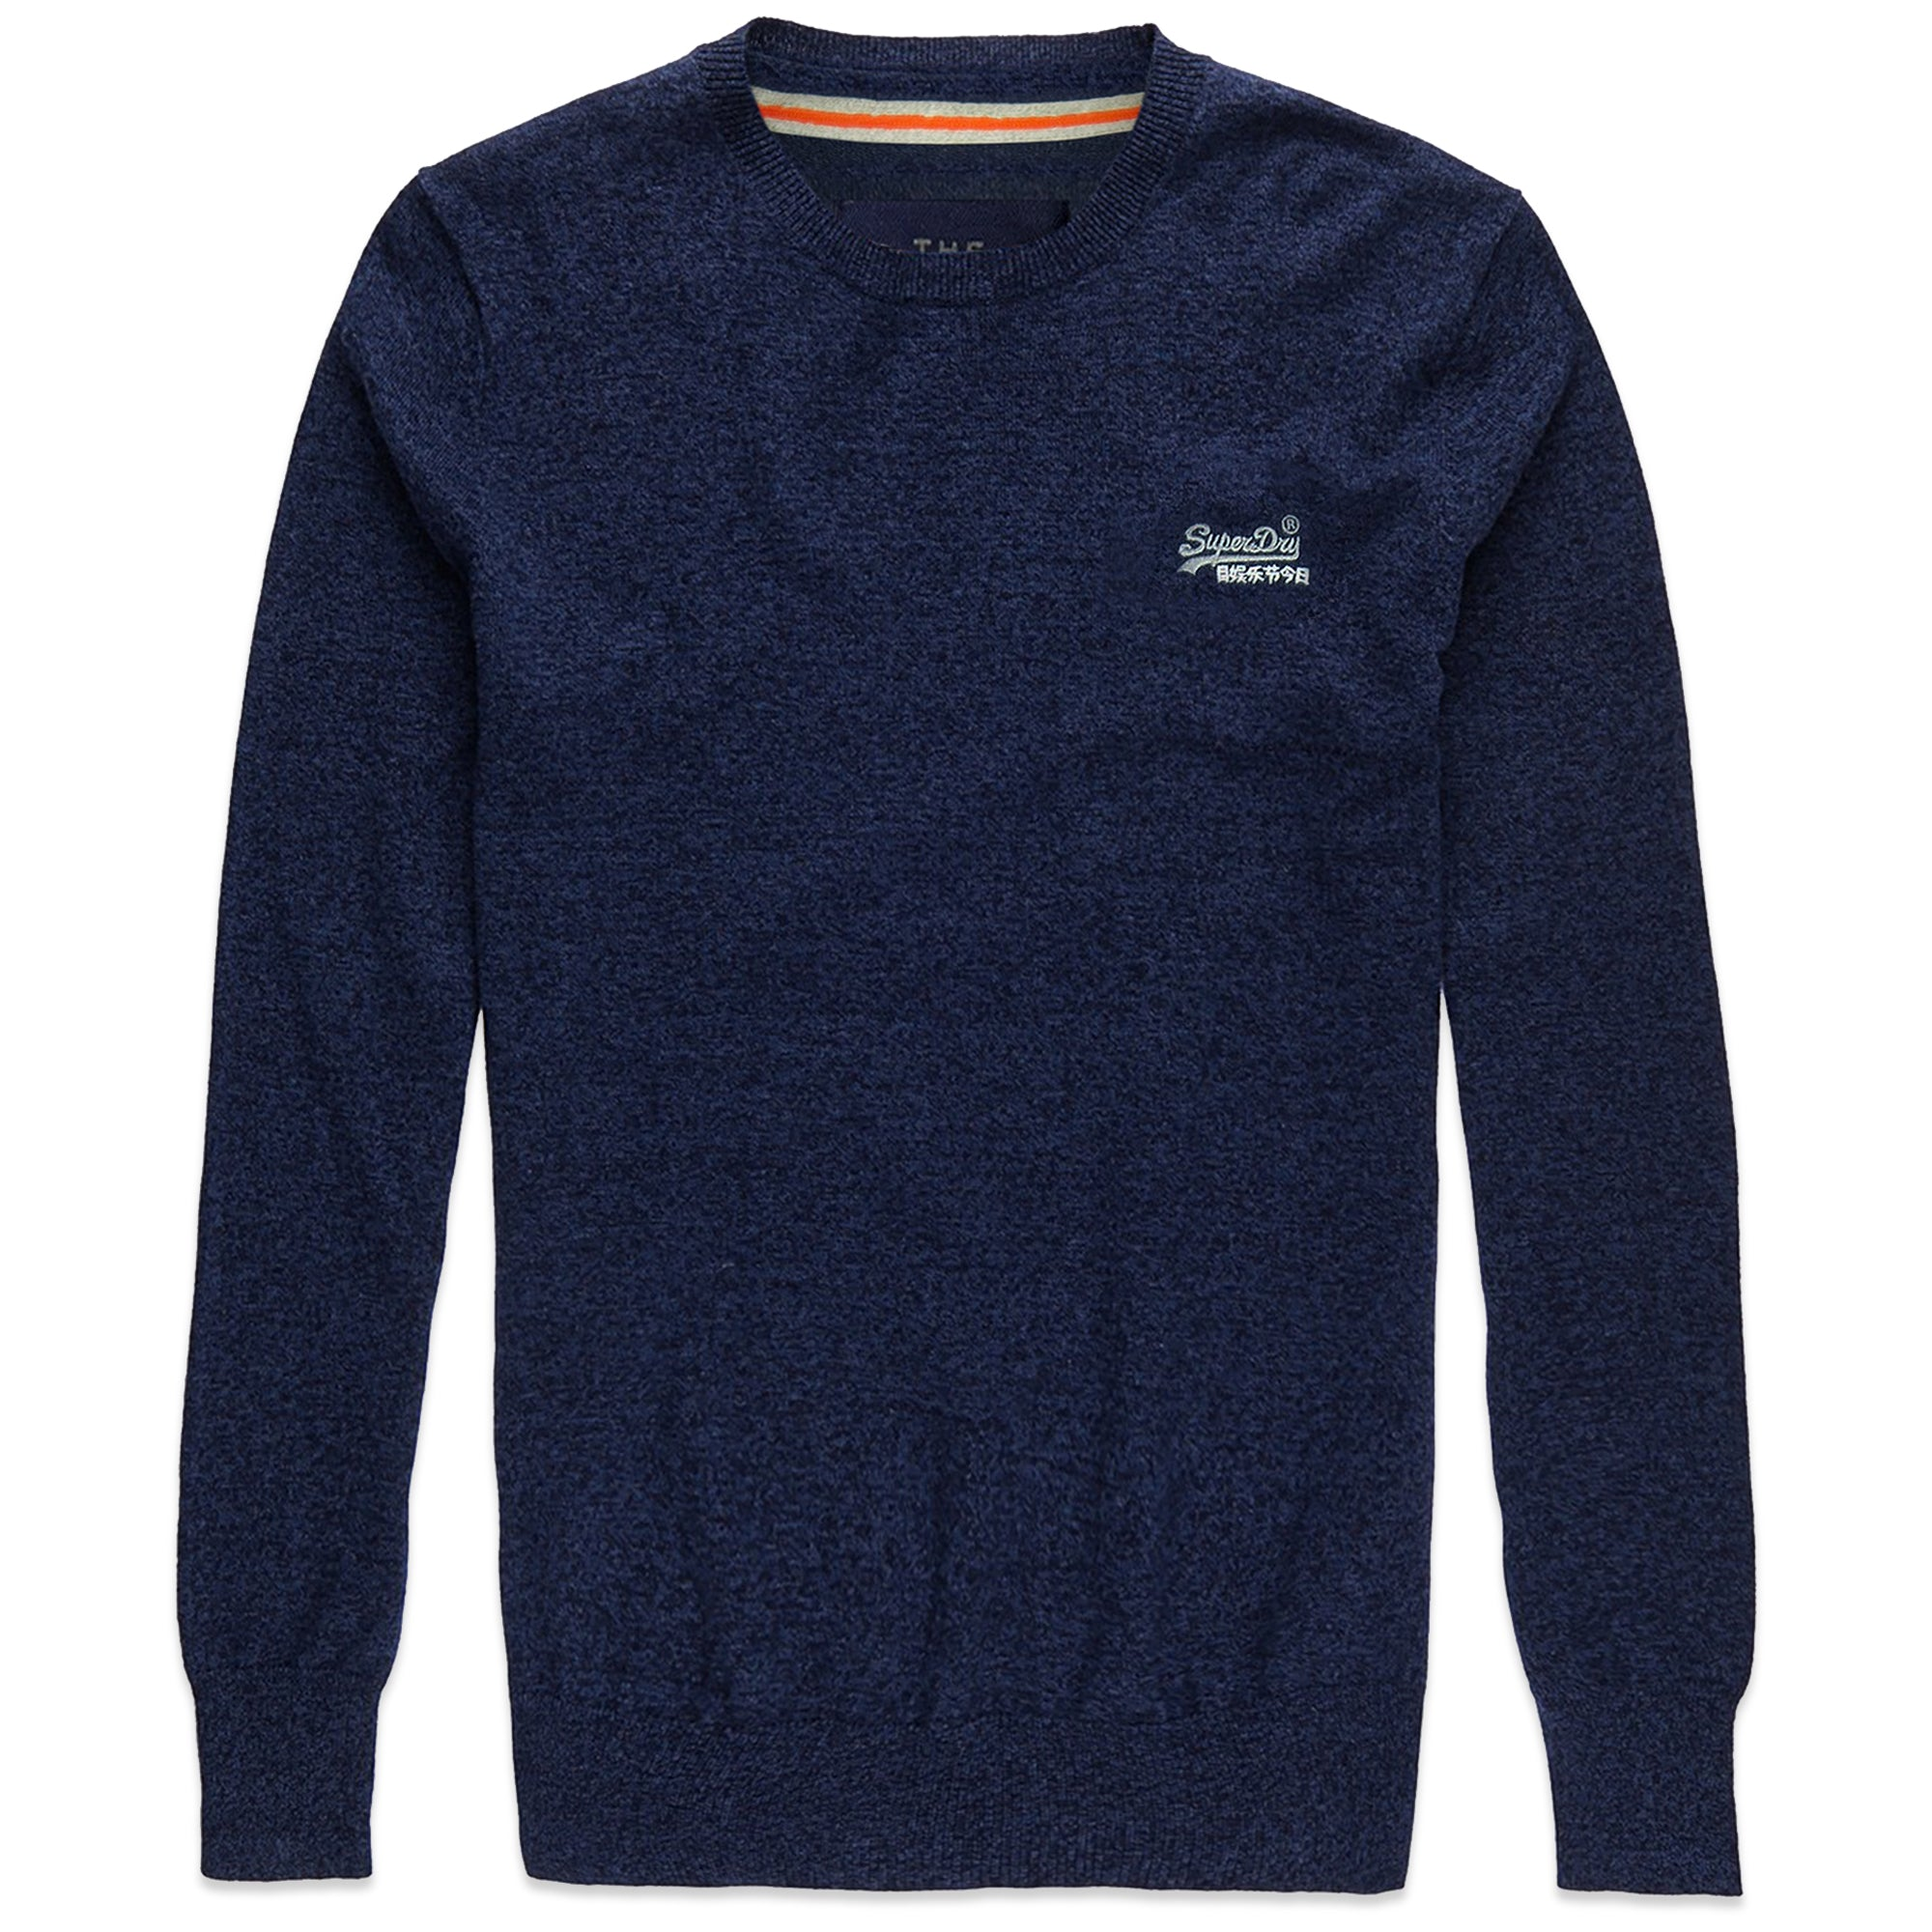 04d05856 Superdry_Orange_Label_Crew_Knit_Front_-_Dull_Navy.jpg?v=1531999712